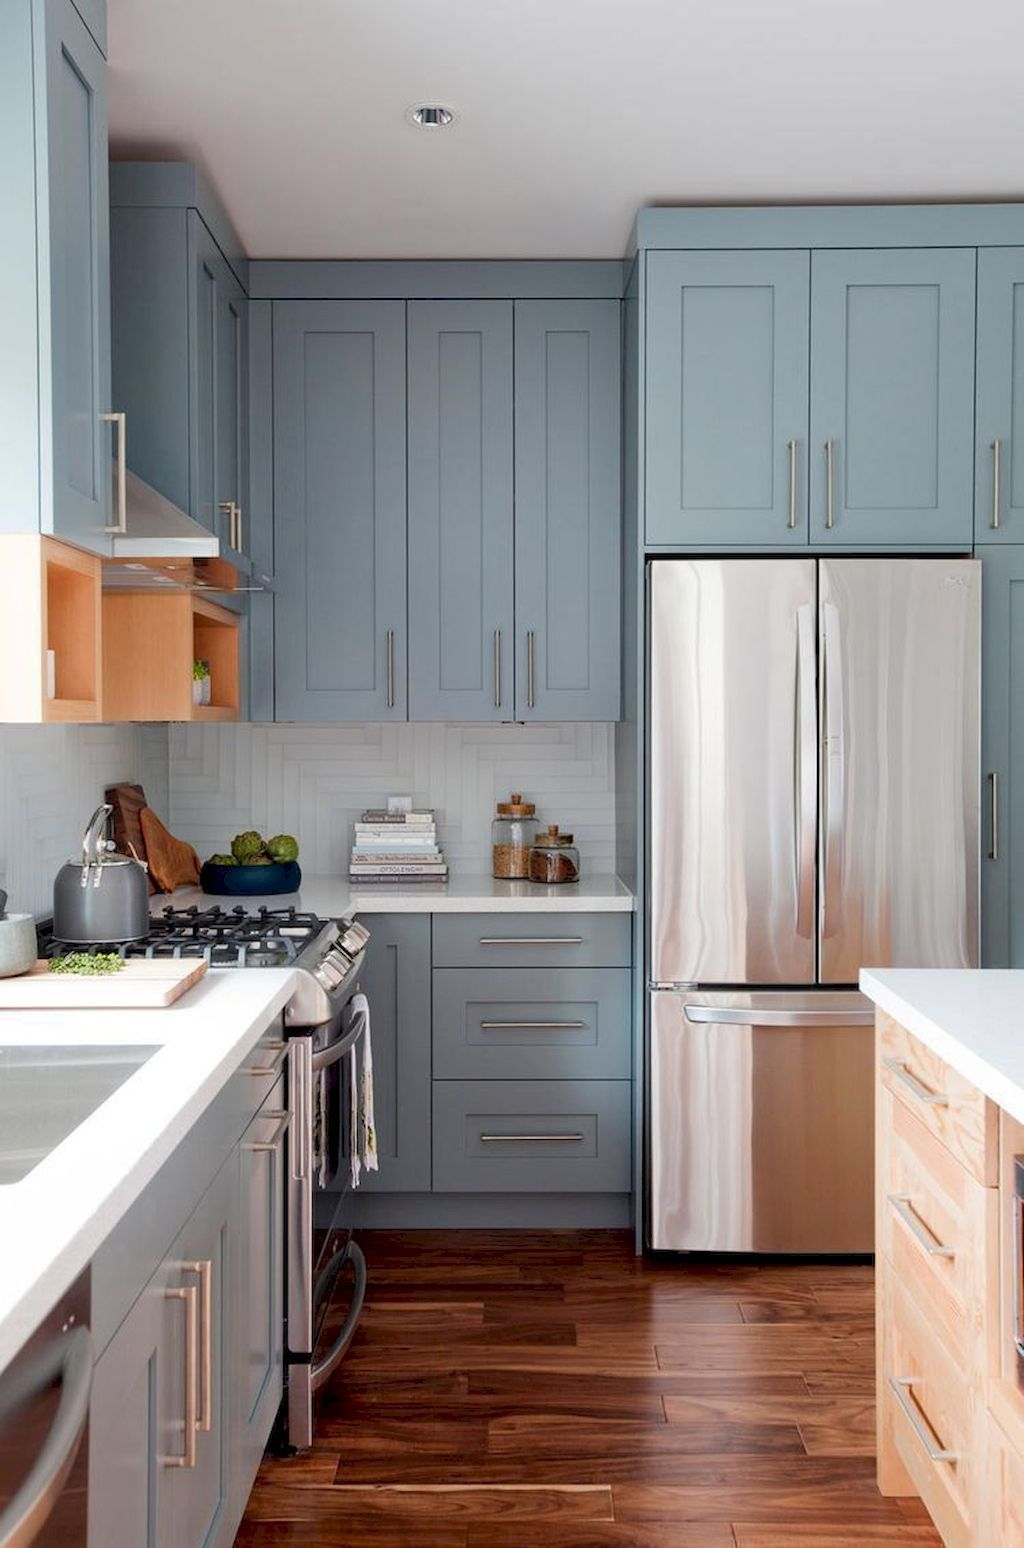 24 blue kitchen cabinet ideas to breathe life into your kitchen kitchen design ideas home on kitchen cabinets blue id=94937